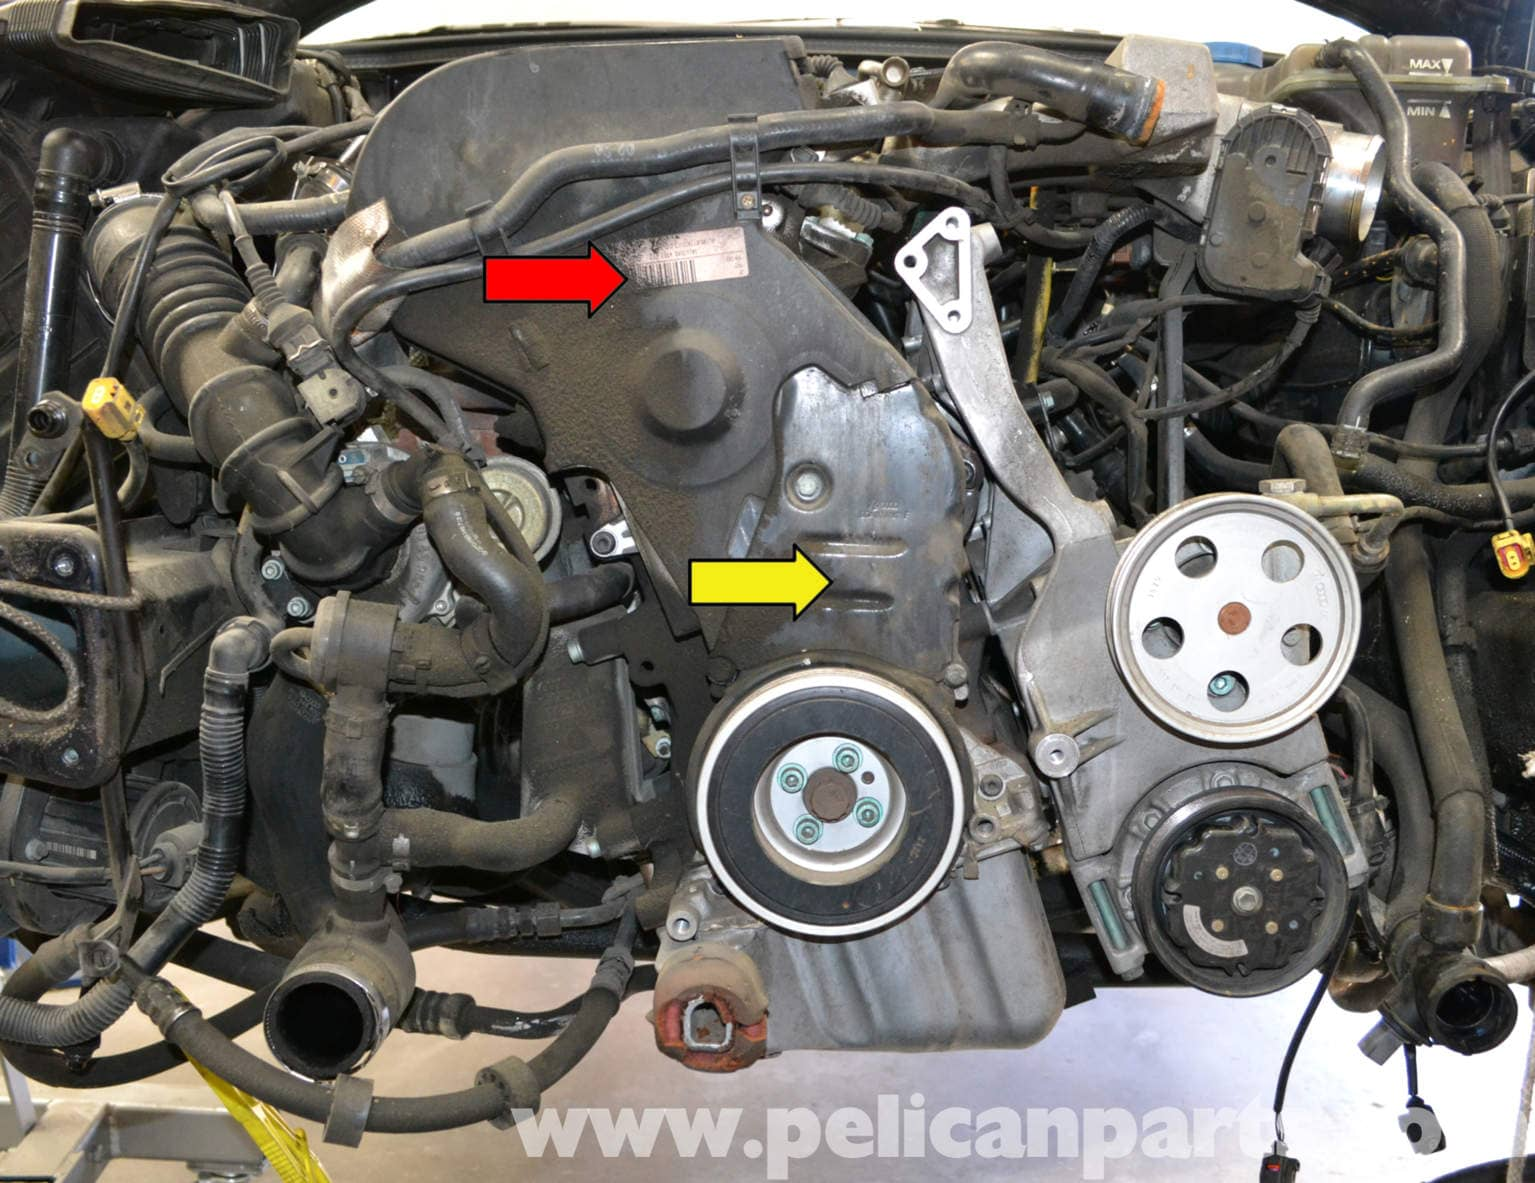 2005 Audi A4 18t Engine Diagram Wiring Will Be A Thing 2003 1 8 Volkswagon Passat B6 Timing Belt Replacement 8t 2002 2008 Pelican Parts Rh Pelicanparts Com Vw Jetta